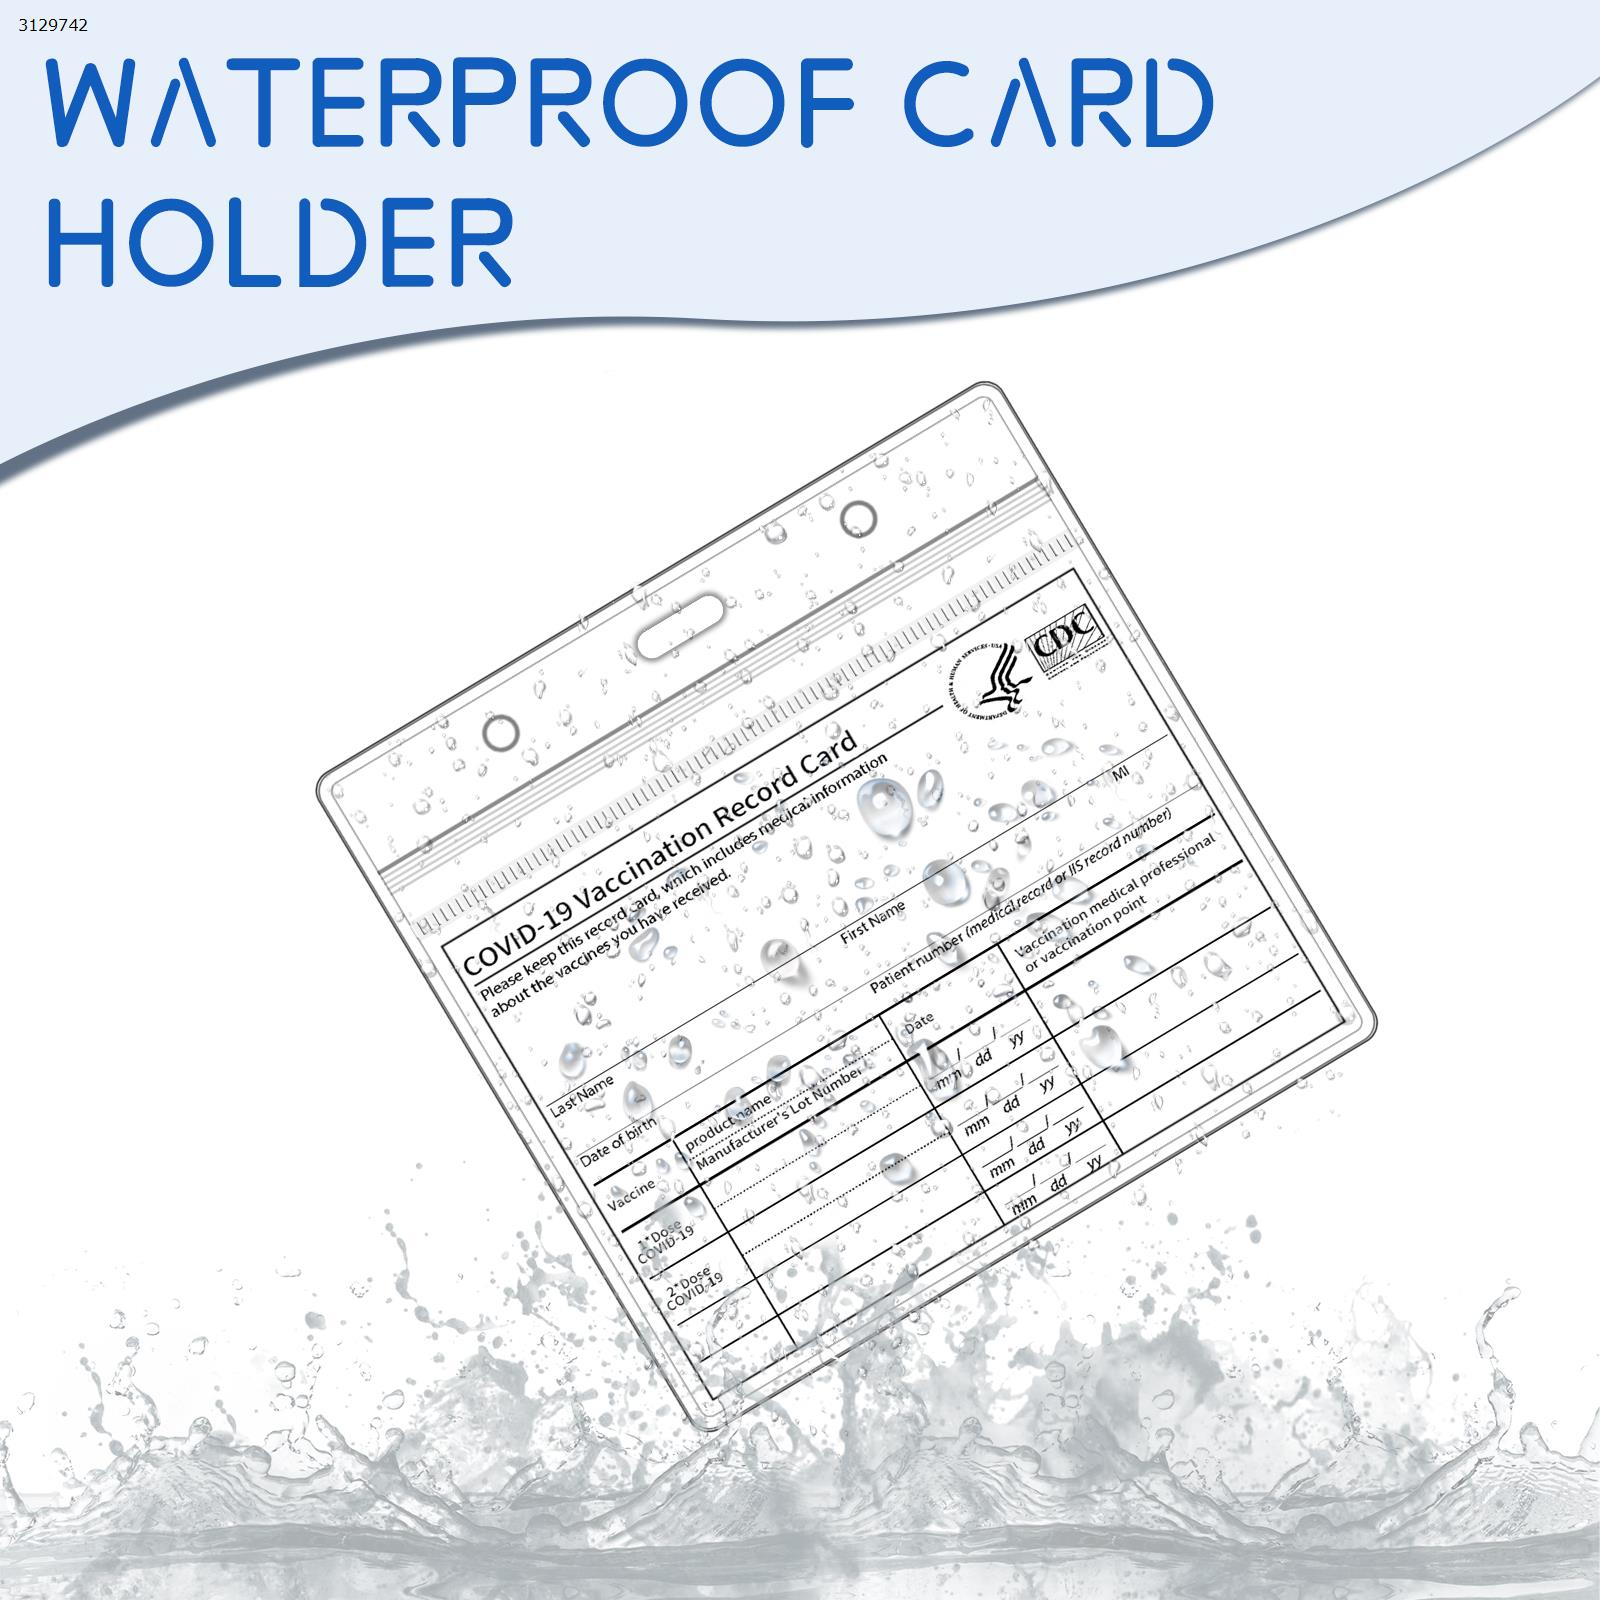 4.3*3.5 Transparent PVC Waterproof Card Holder (5pcs) Other N/A